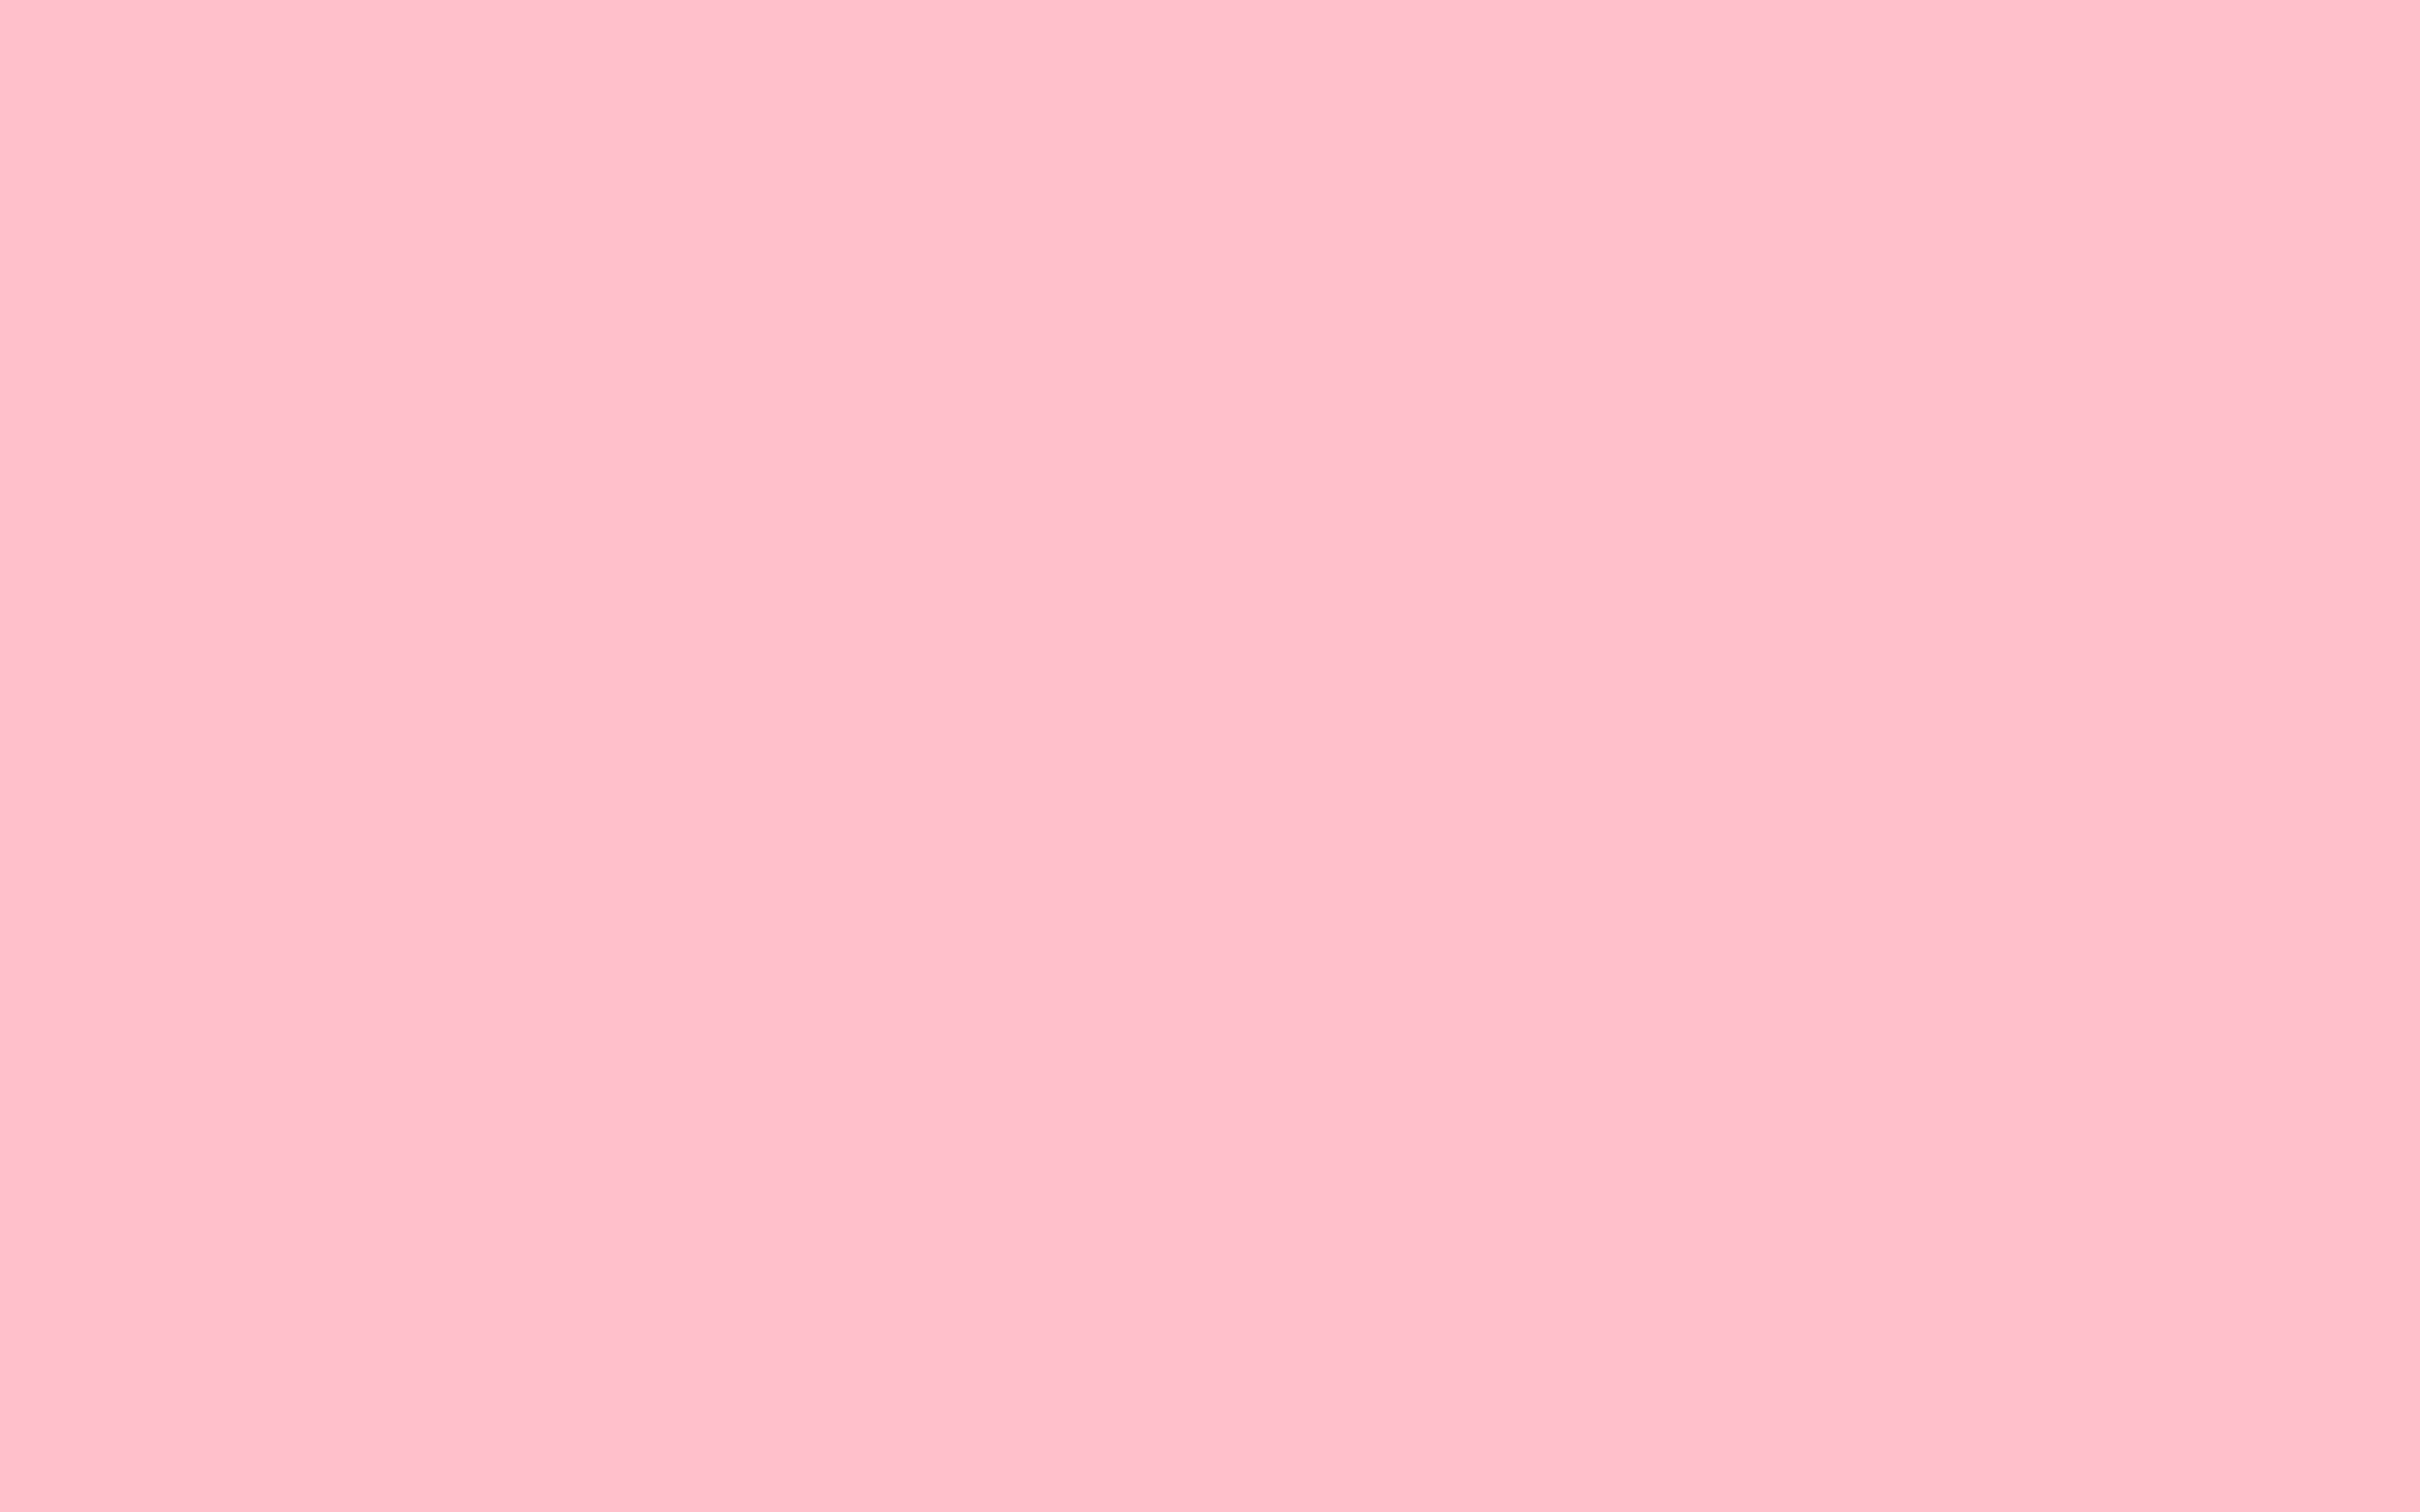 2880x1800 Pink Solid Color Background